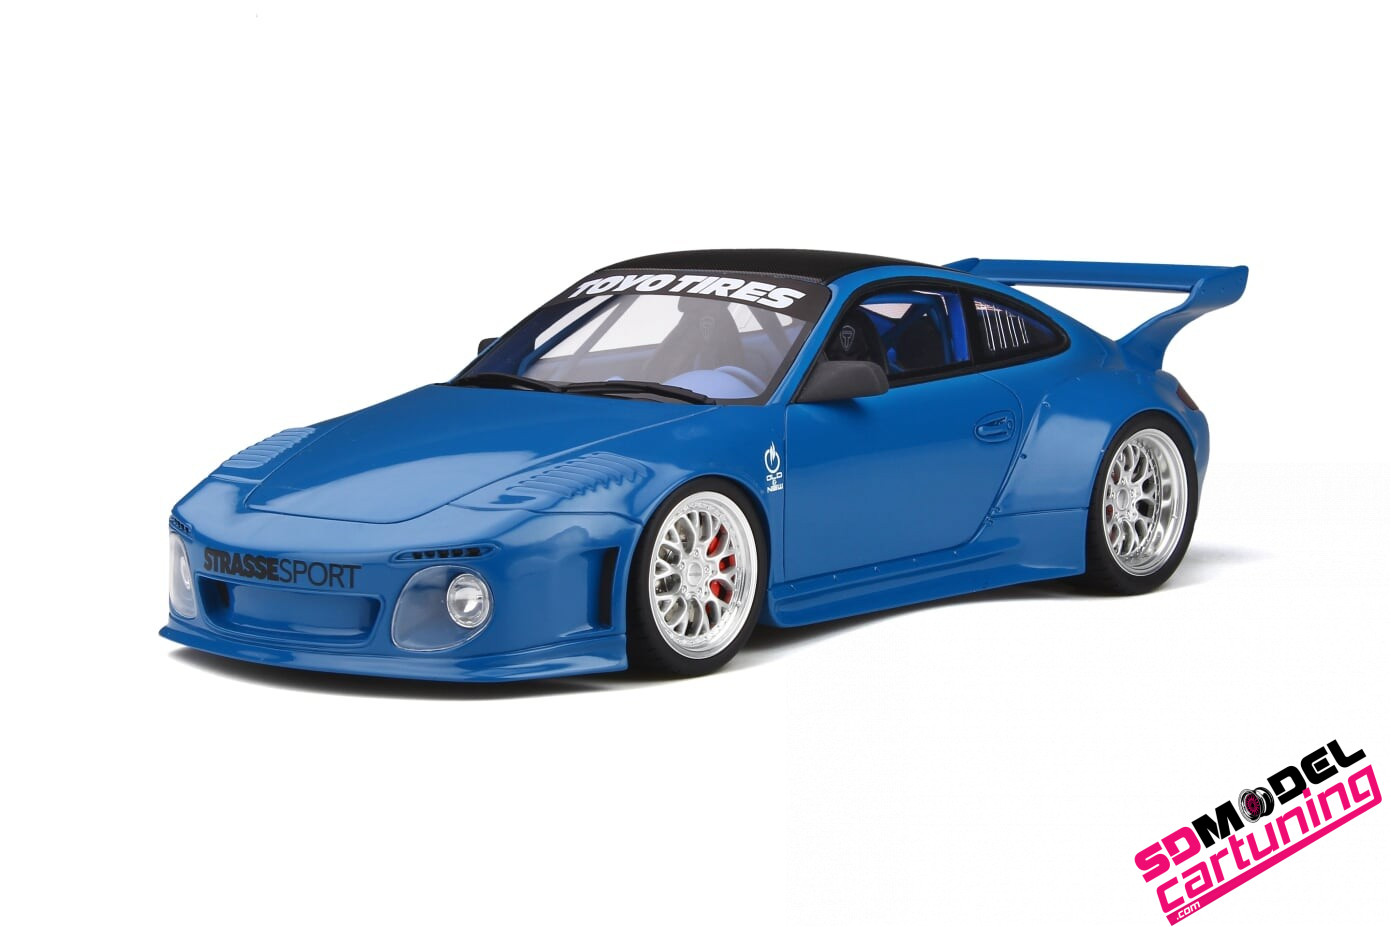 1:18 Porsche 911 old and new bodykit